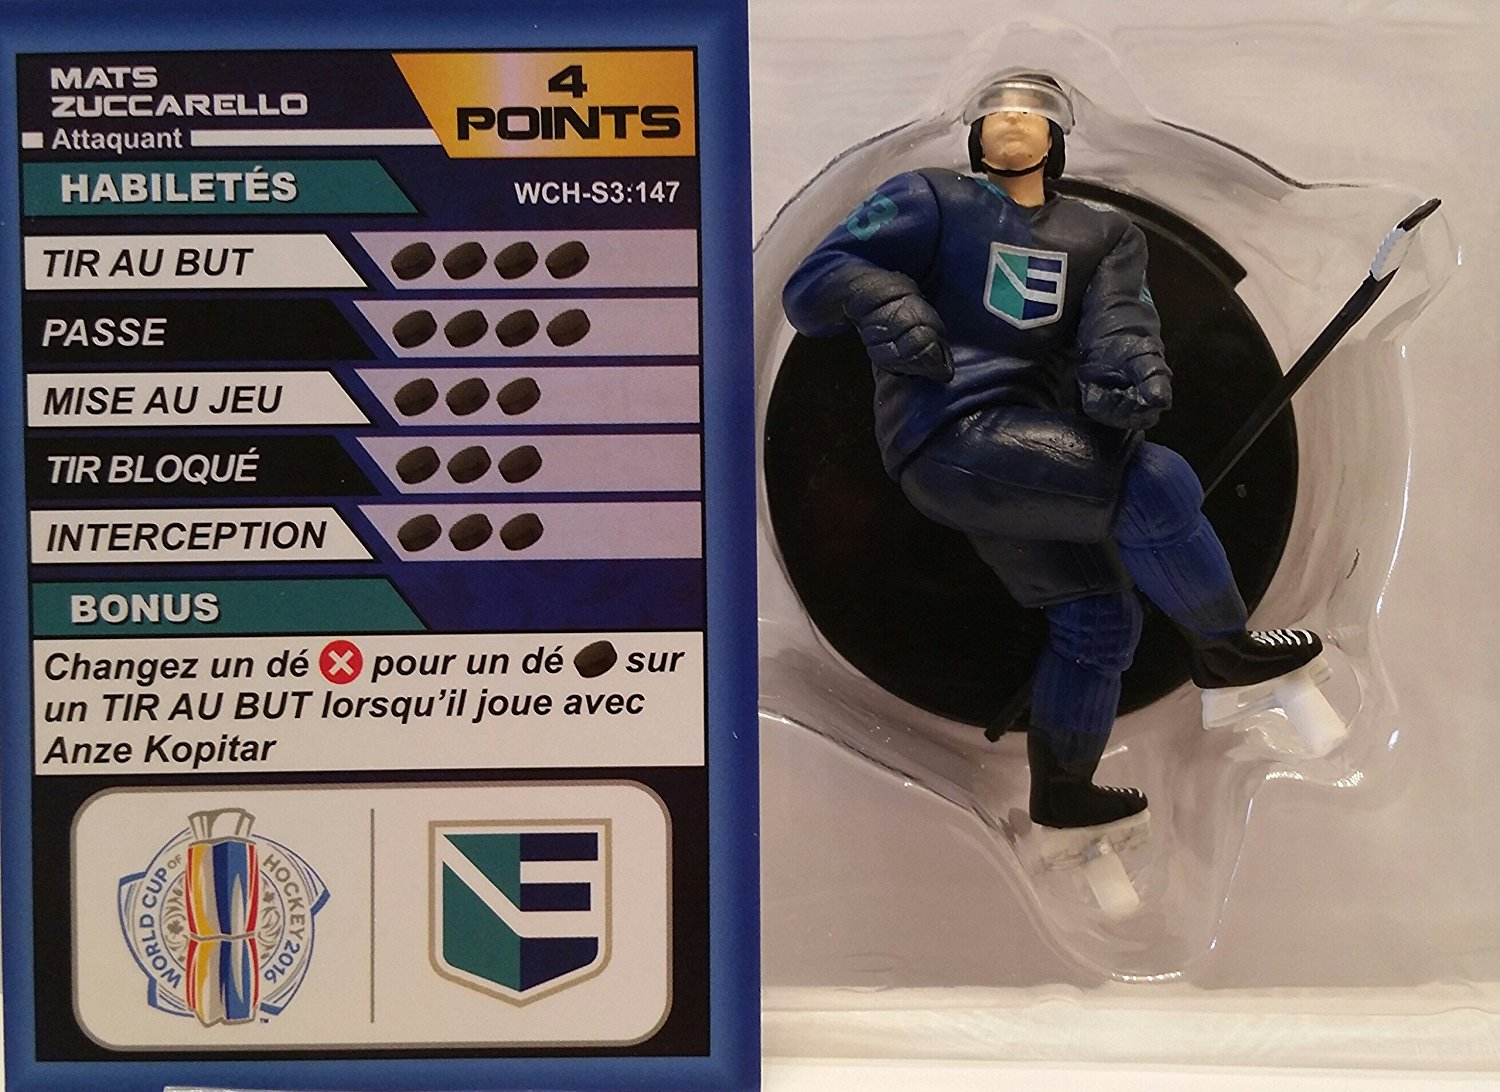 World Cup of Hockey Team Europe Mats Zuccarello (Common) by